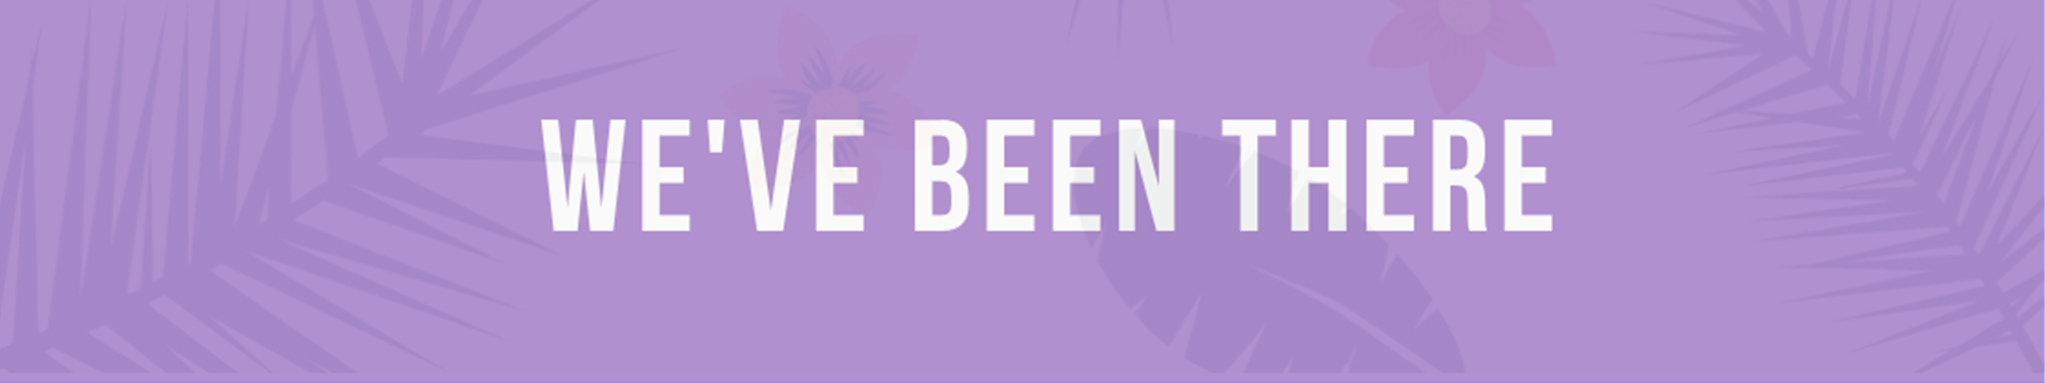 """We've been there"" banner"